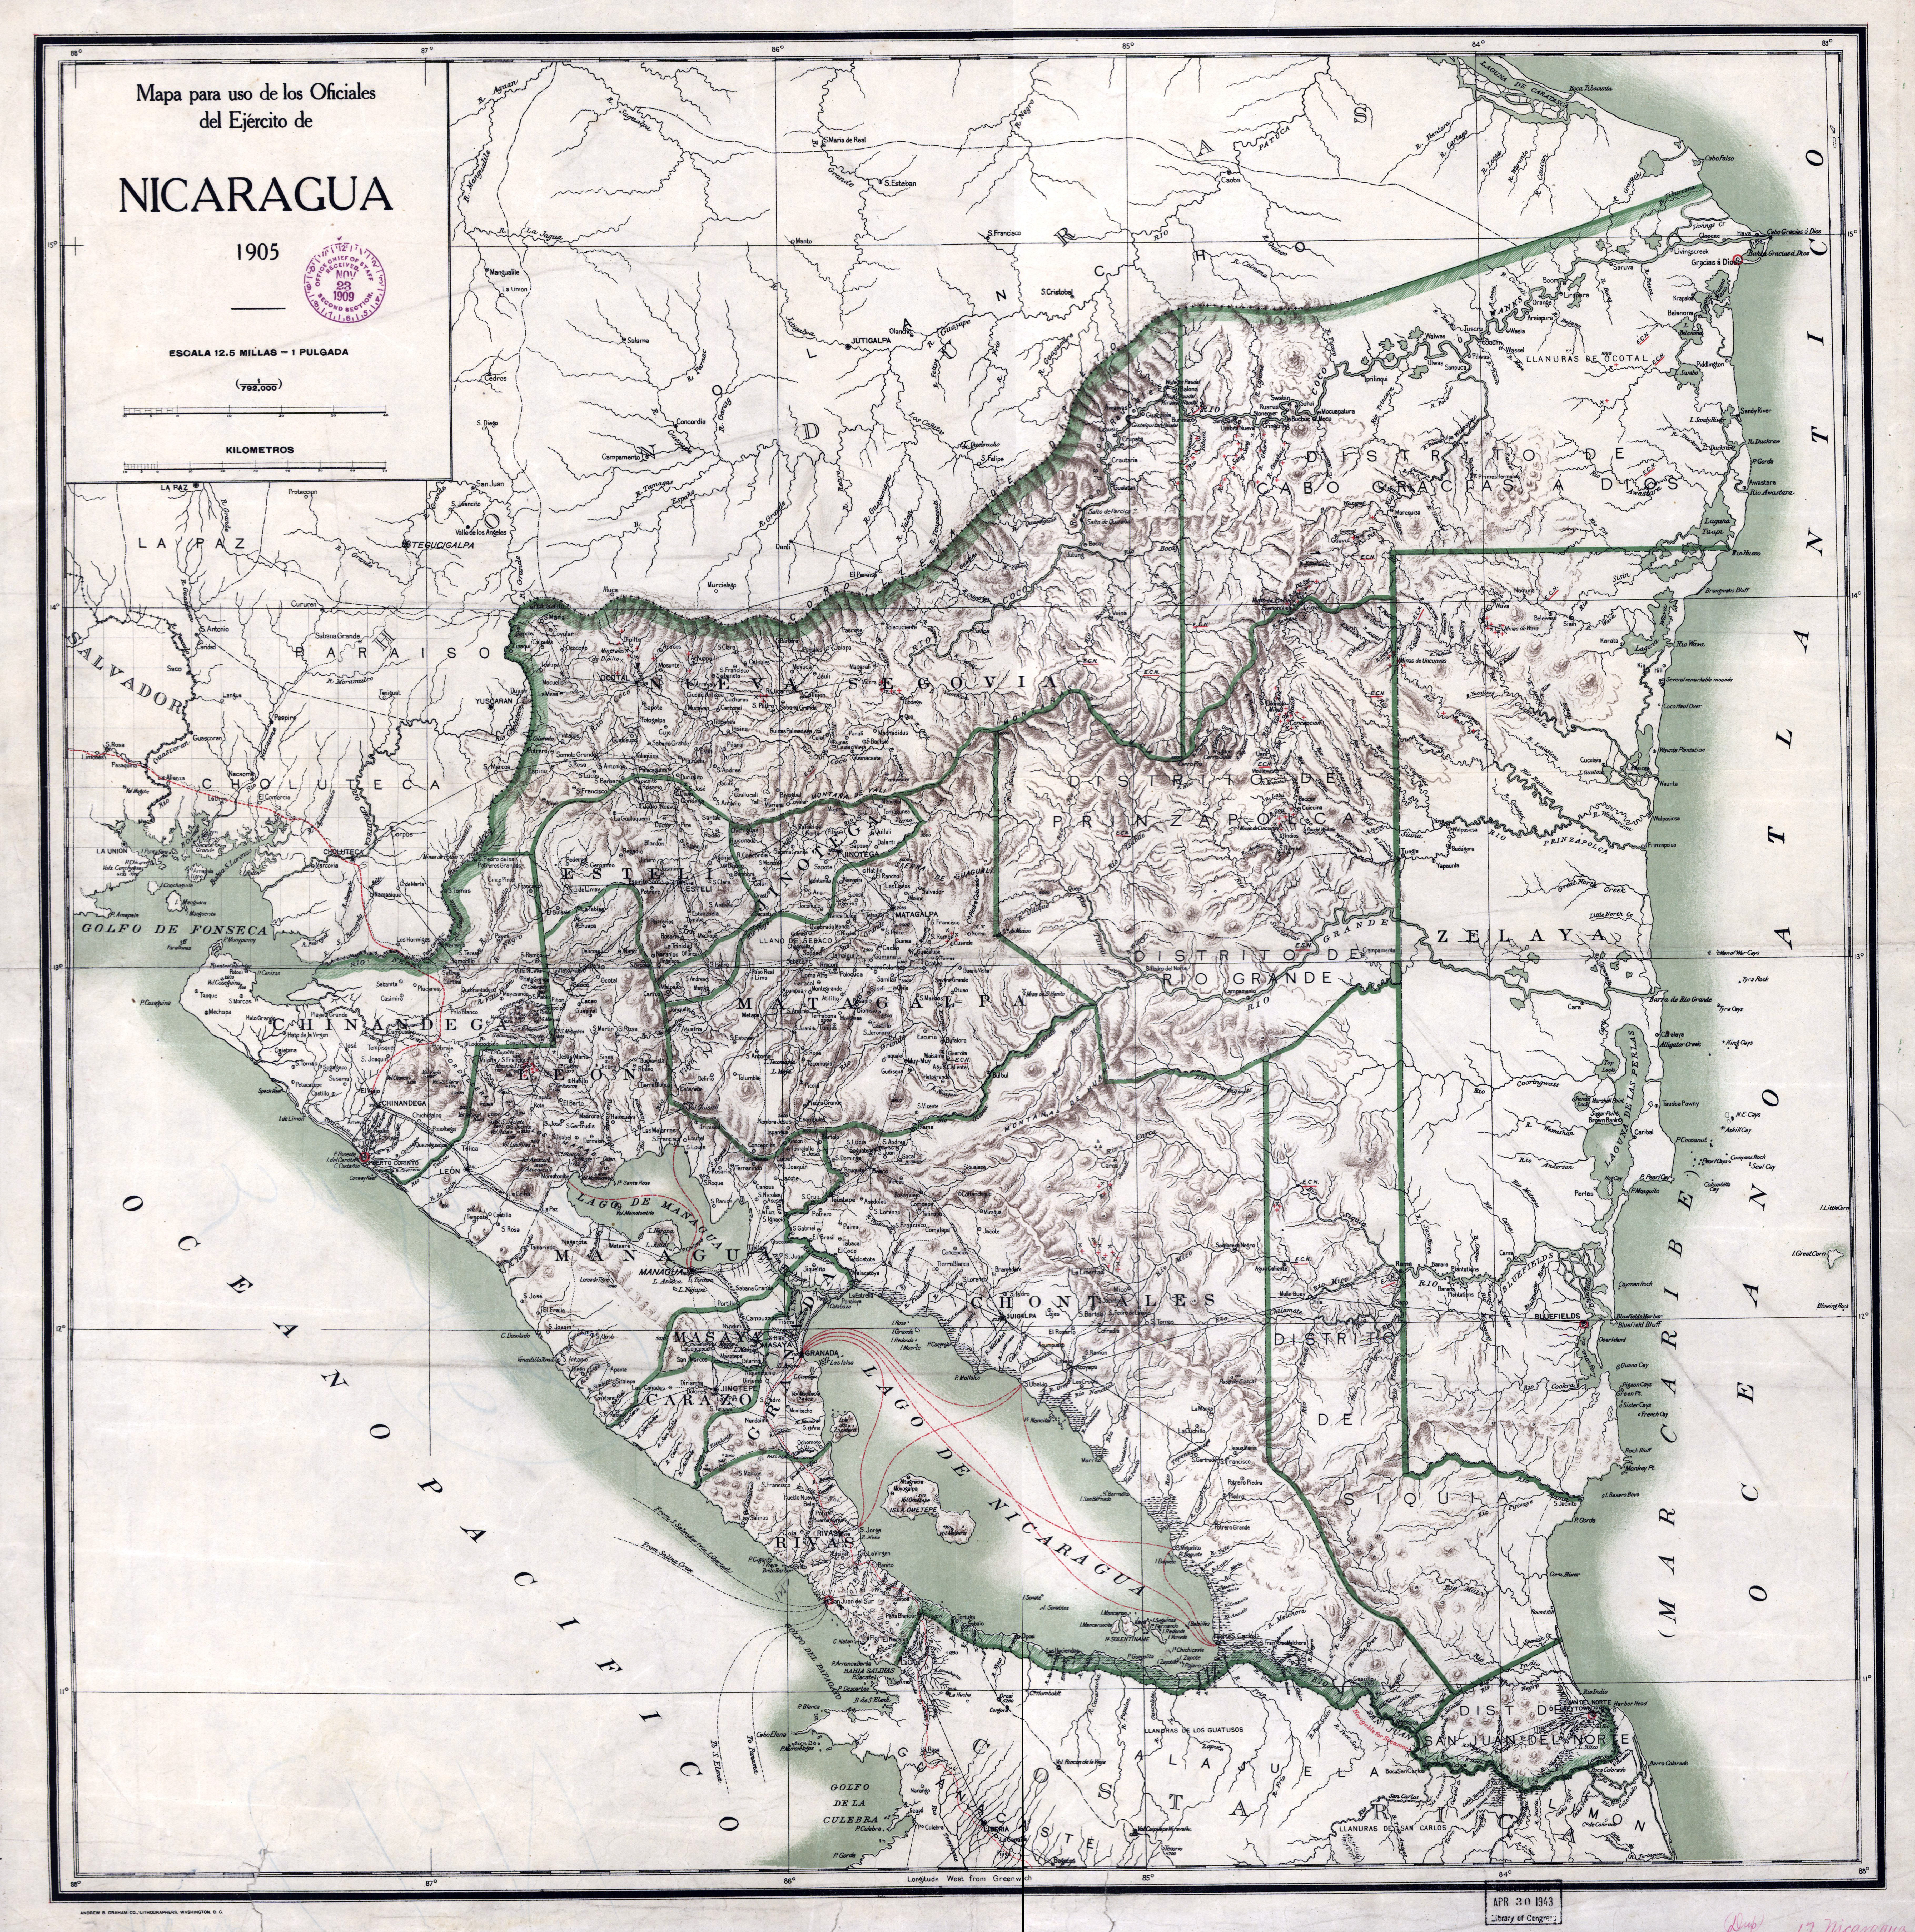 Large scale old map of Nicaragua with administrative divisions and